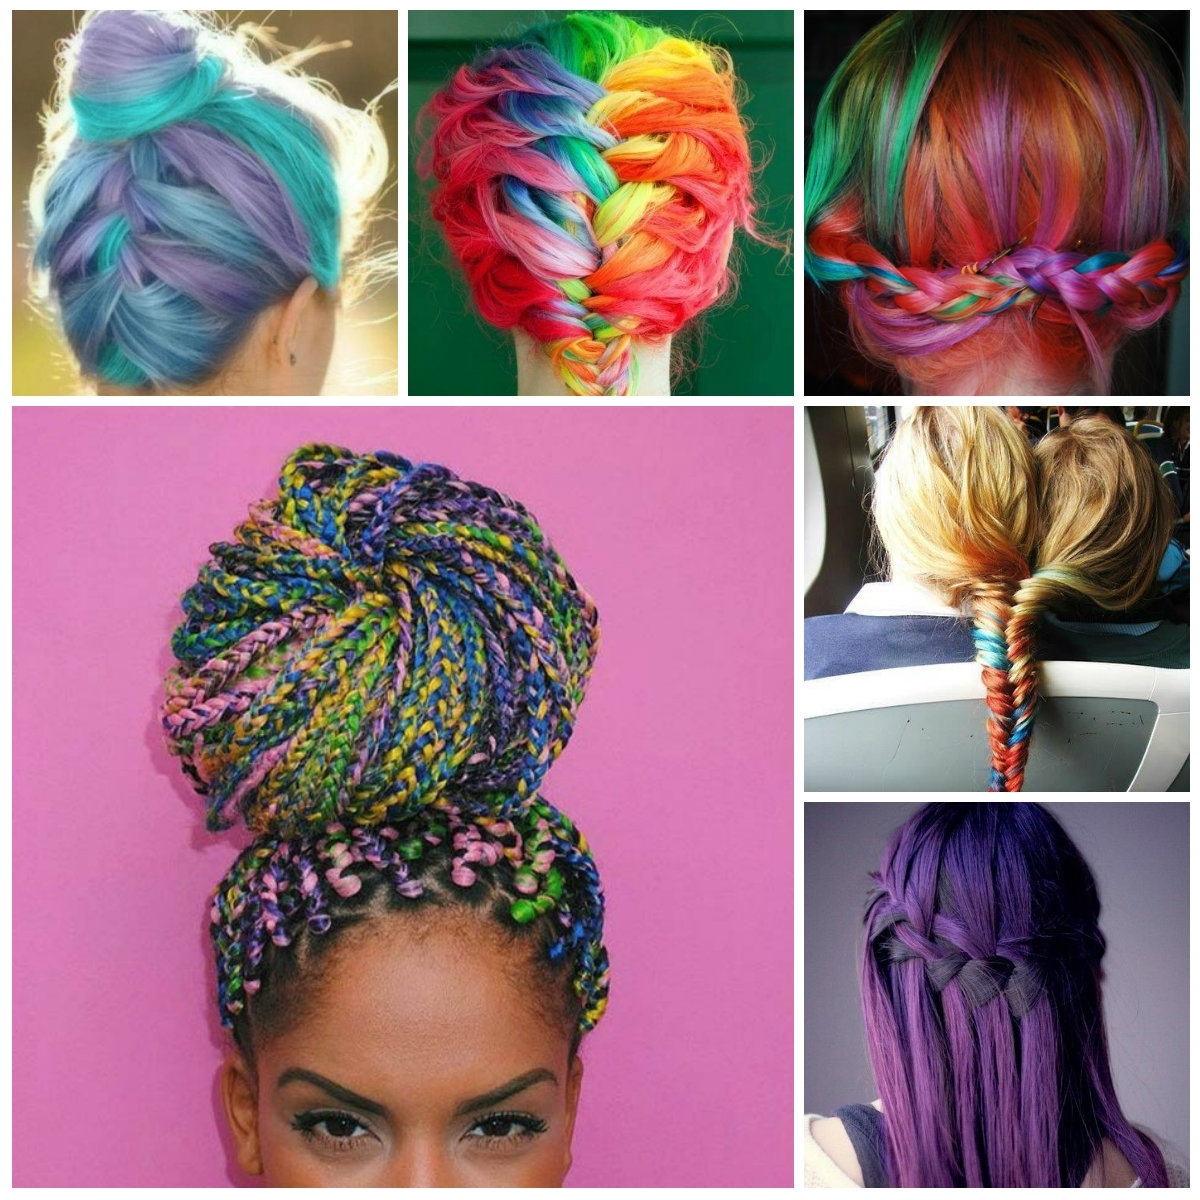 Pink And Purple Braid Dye Hair Color Trends – Best For Every One Within Recent Braided Hairstyles With Color (View 11 of 15)